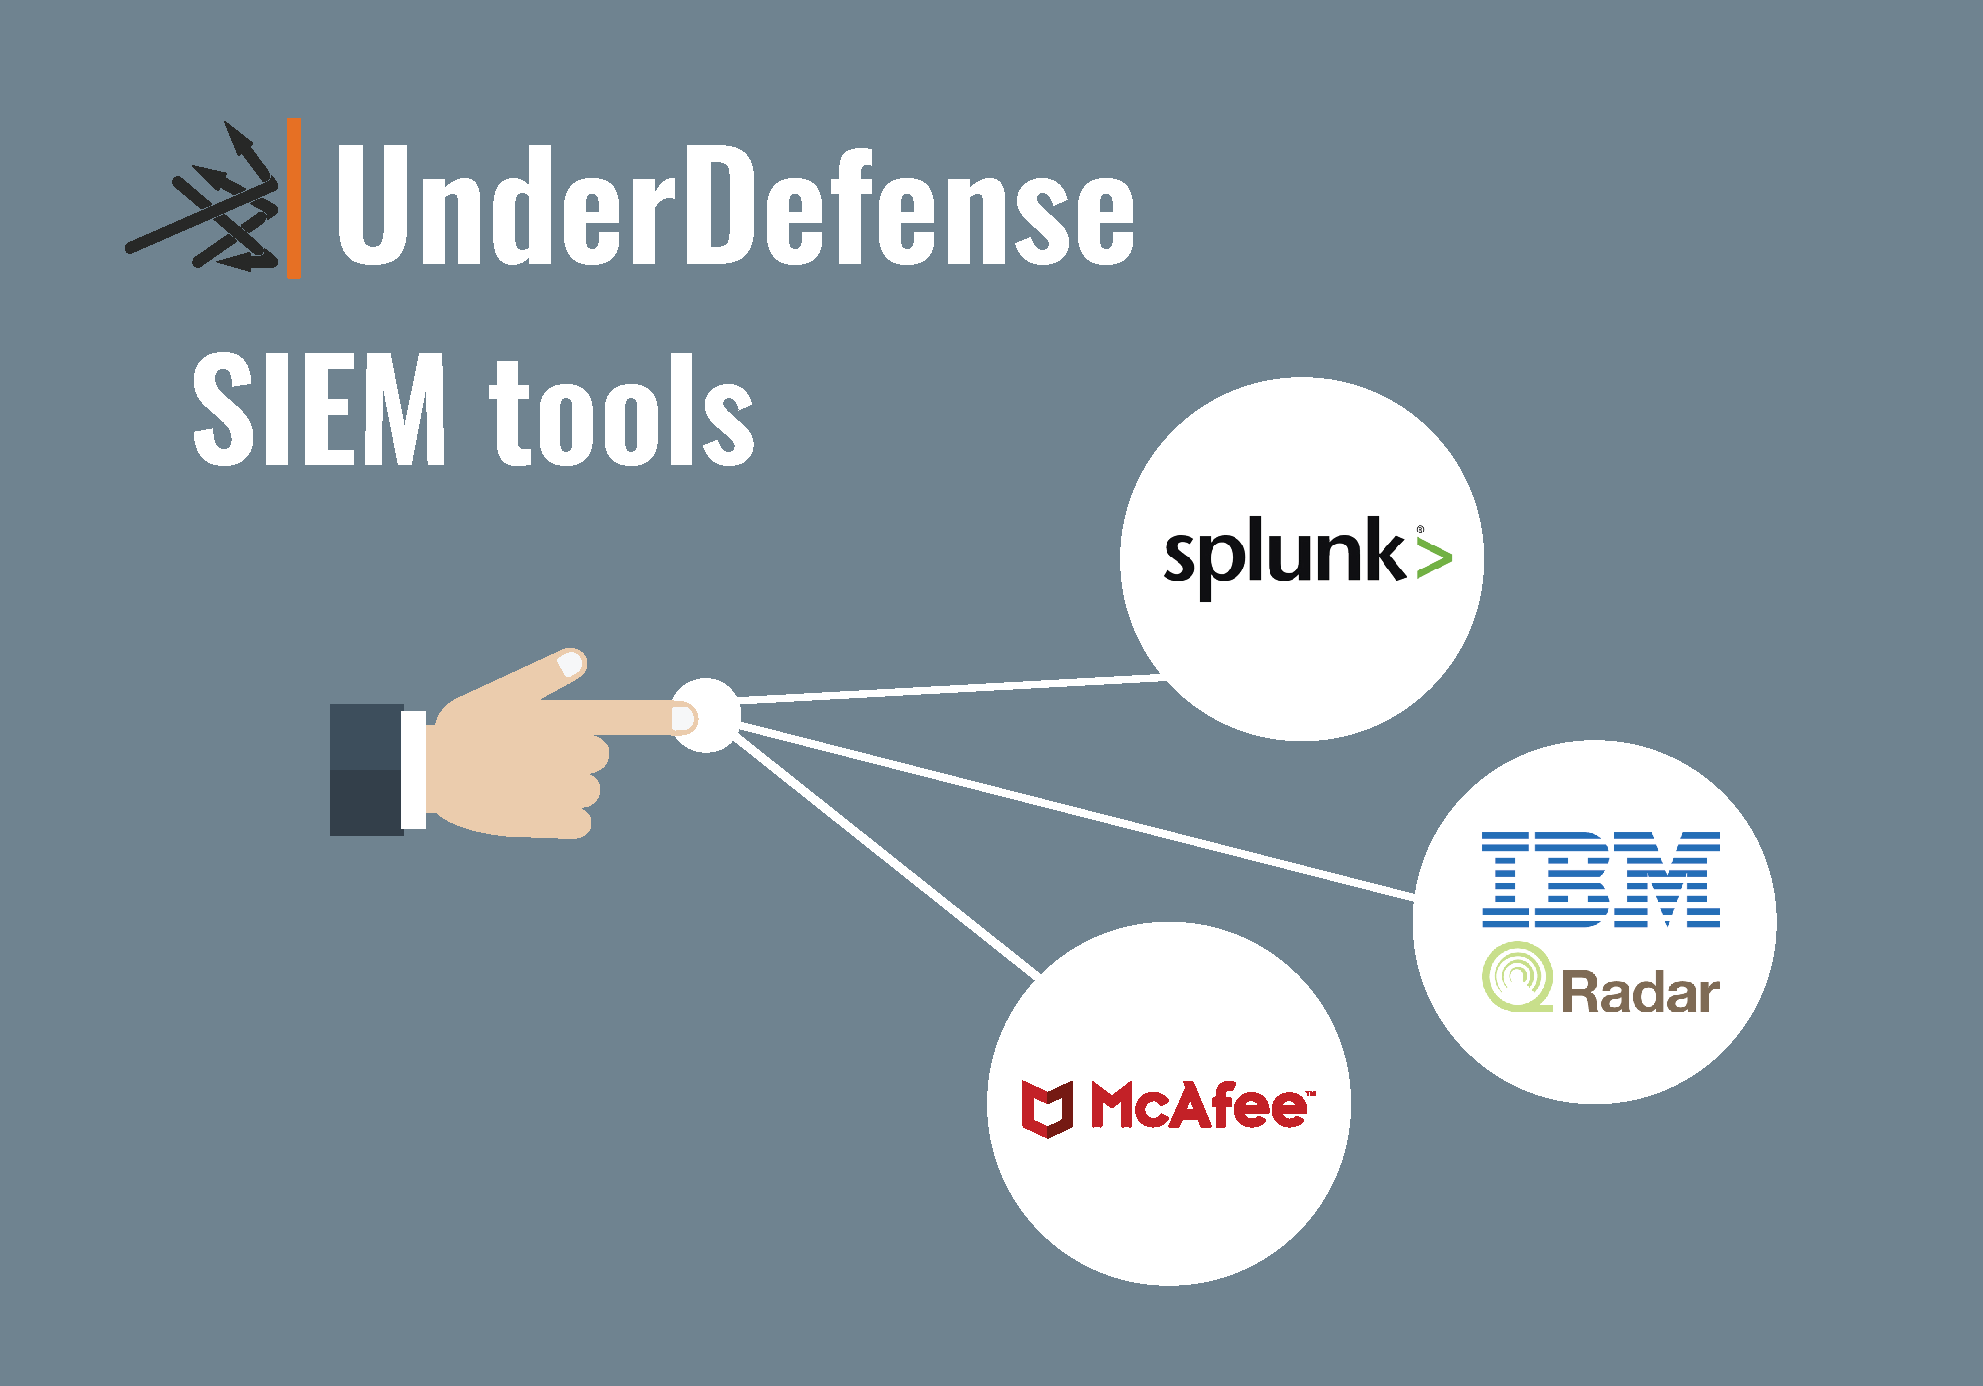 UnderDefense is product agnostic